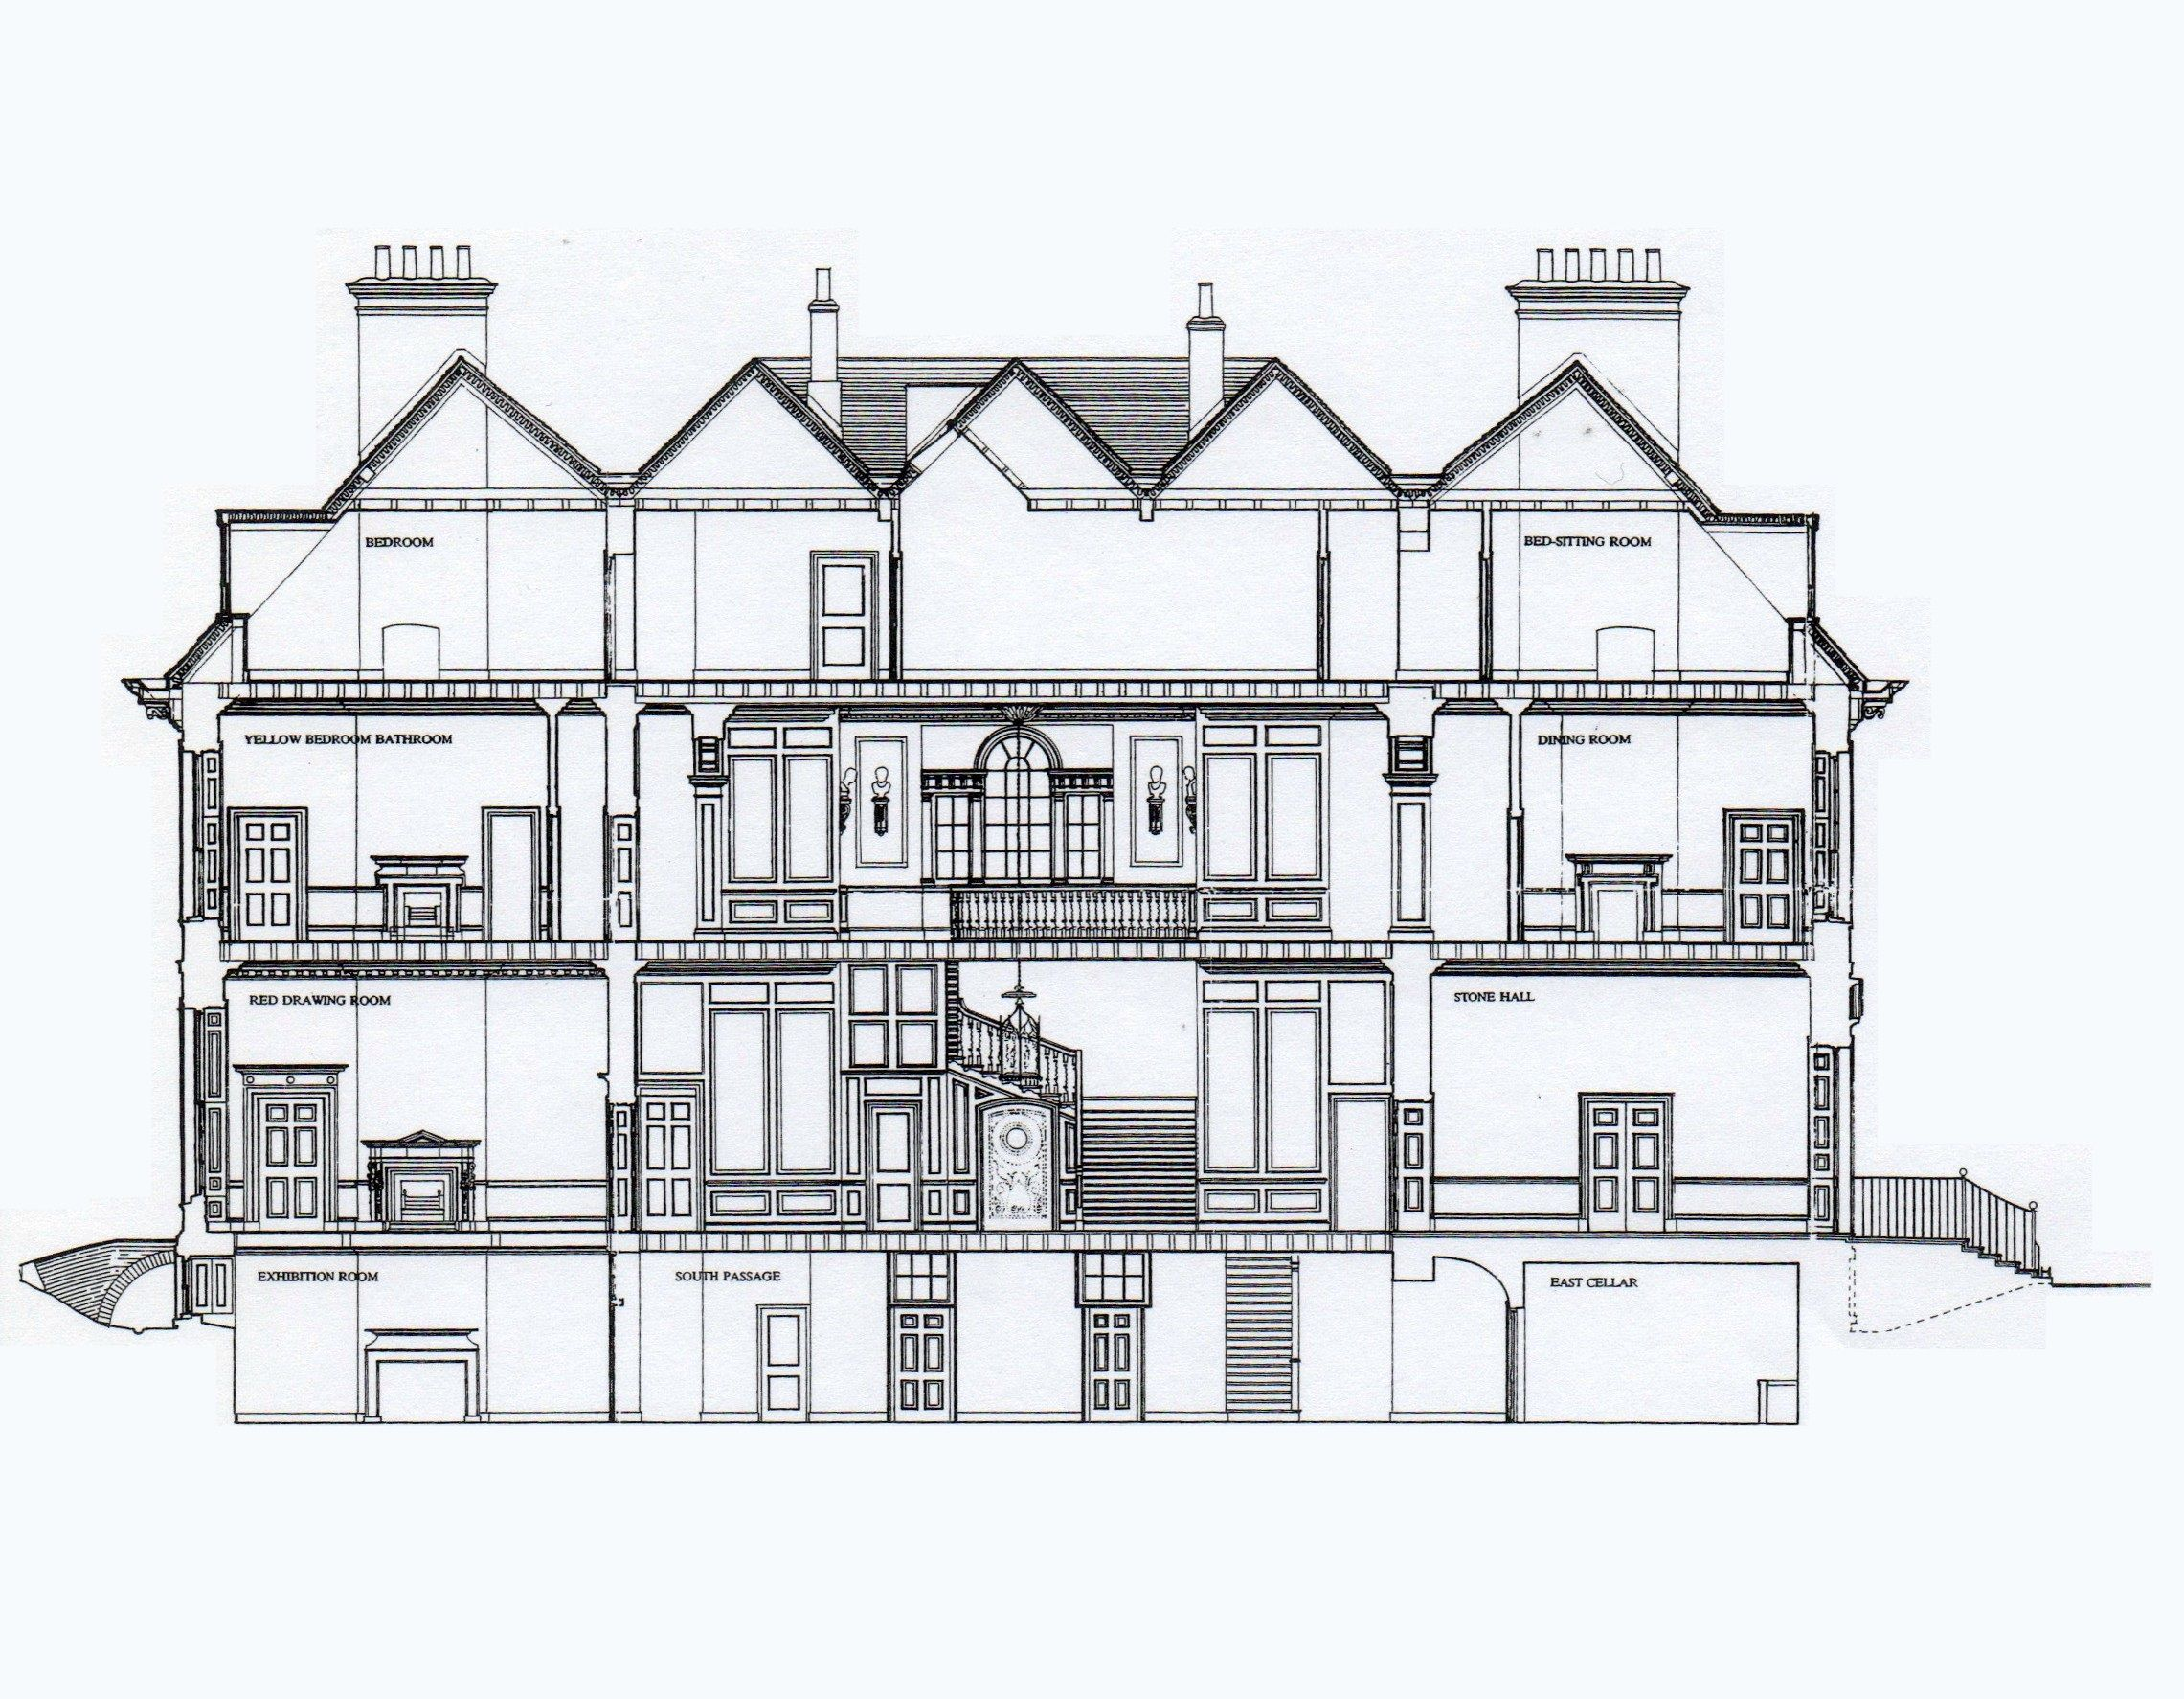 uppark west sussex england cross section architectural plans